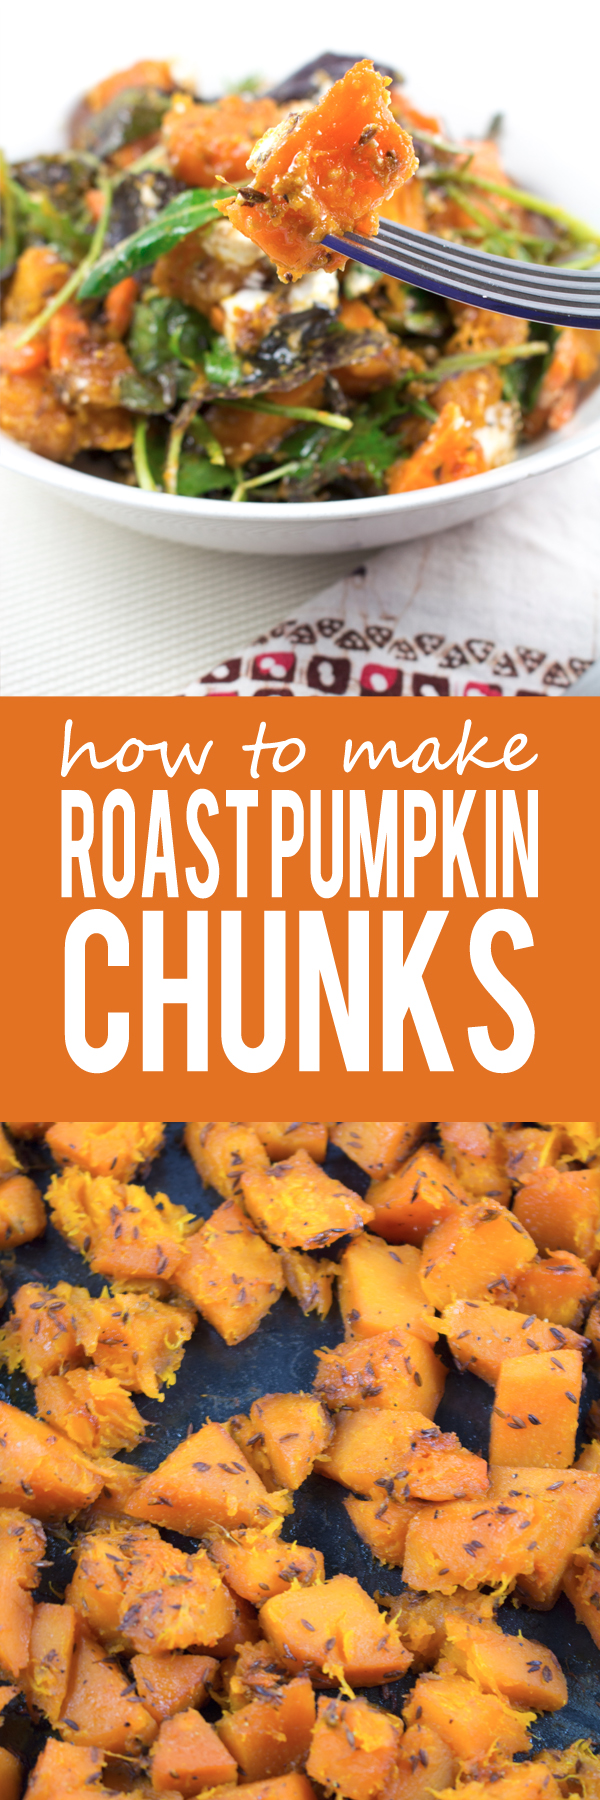 how to cook pumpkin quickly